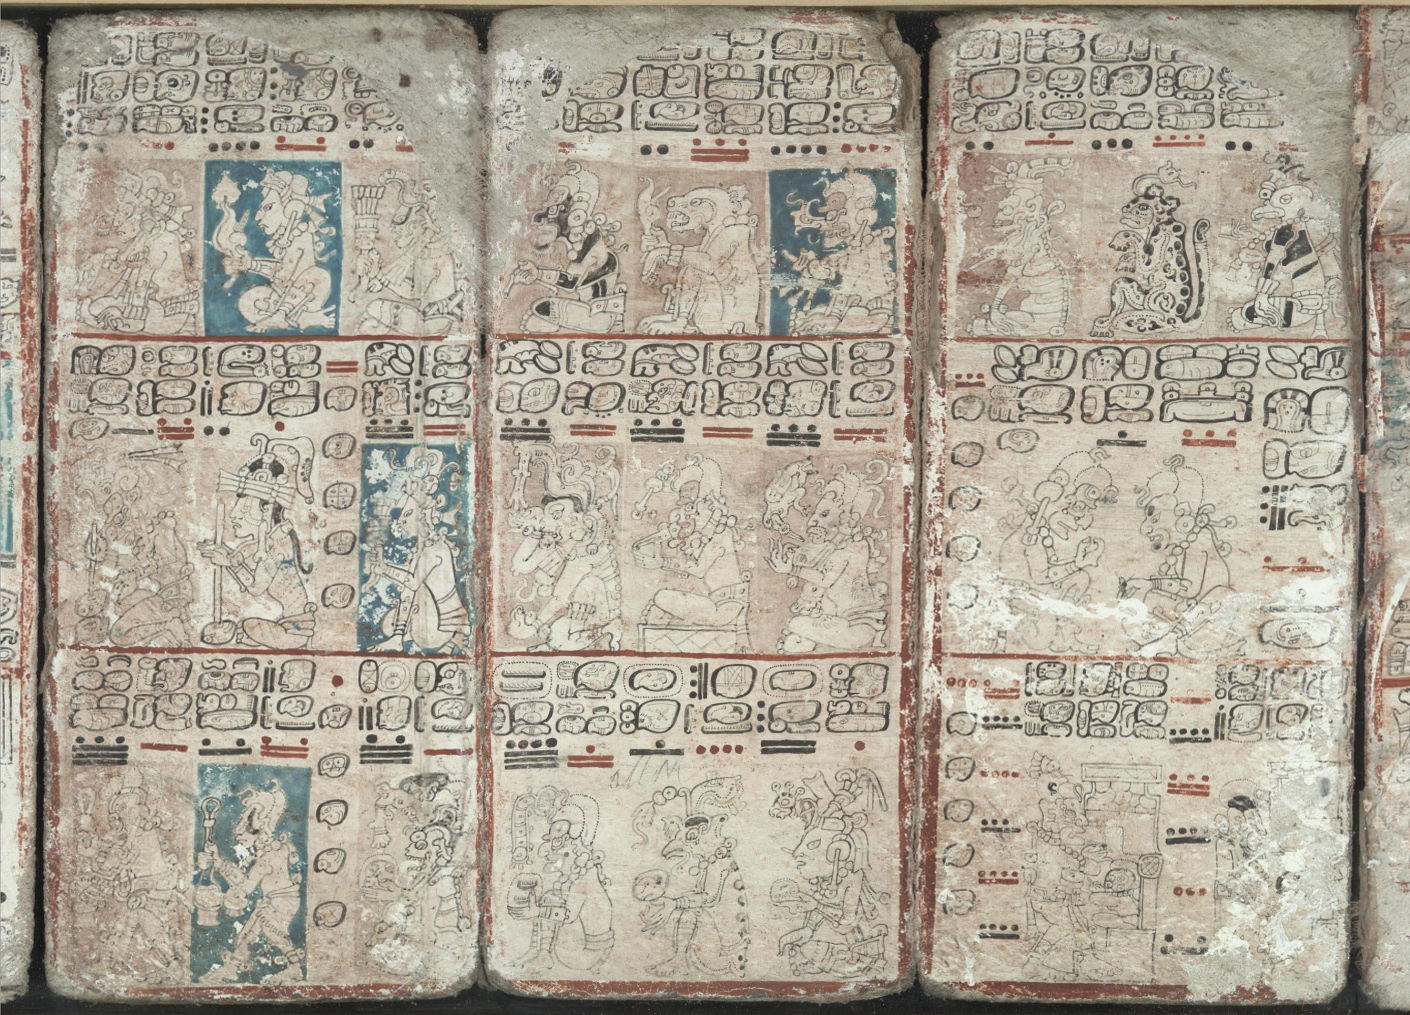 How Five Ancient Languages Were Translated